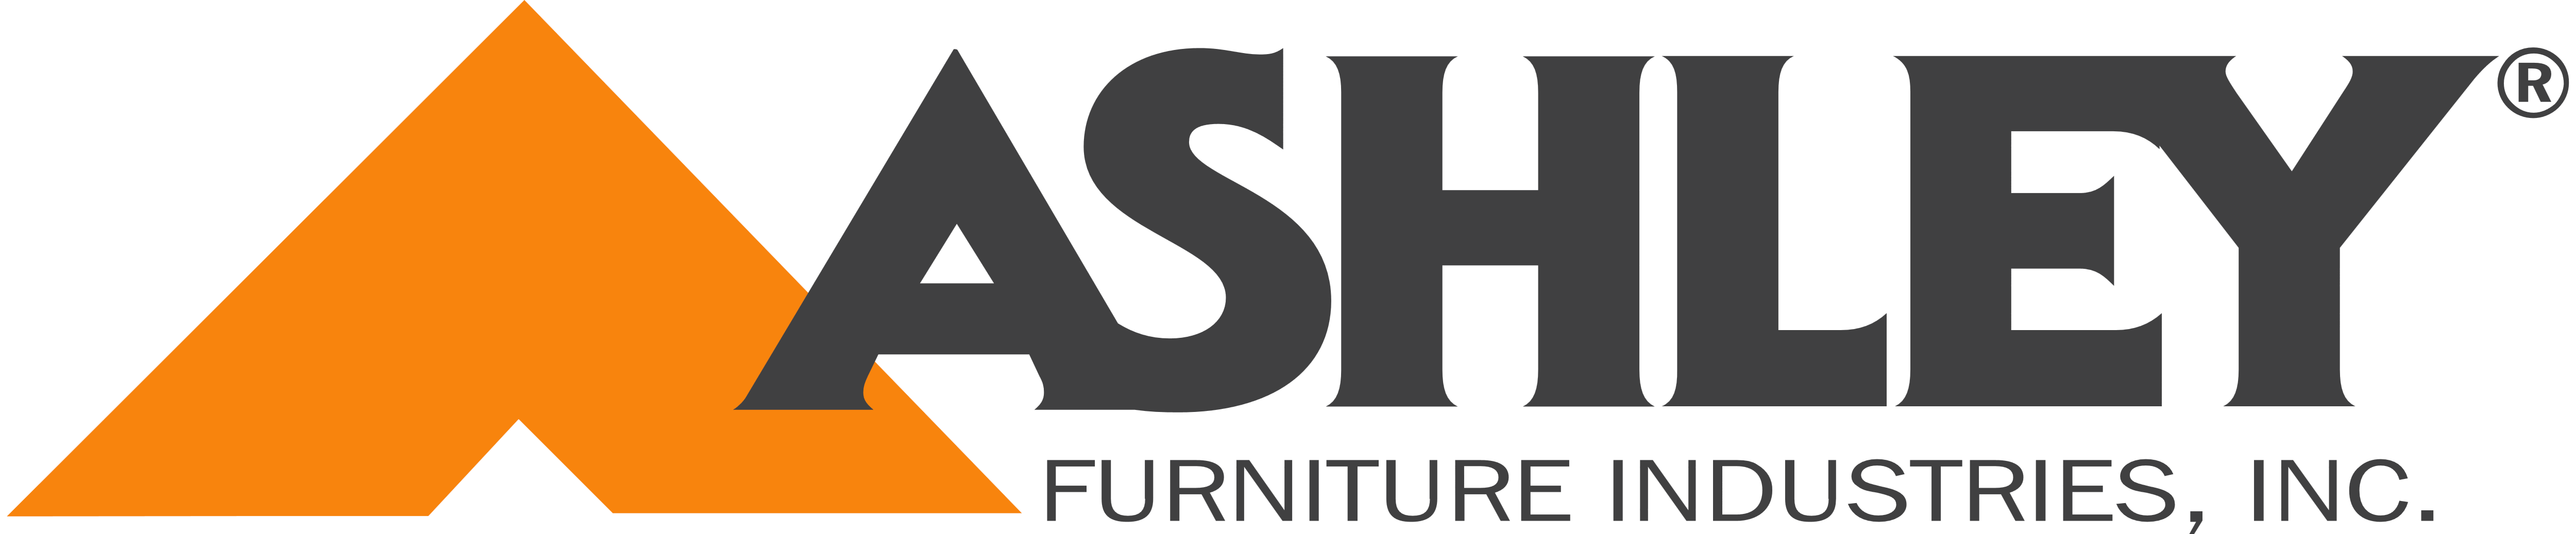 leverages industry to victims hurricane market network press trends media quarterback texan store wood ashley and team homestore social watson releases deshaun refurnish woodworking furniture